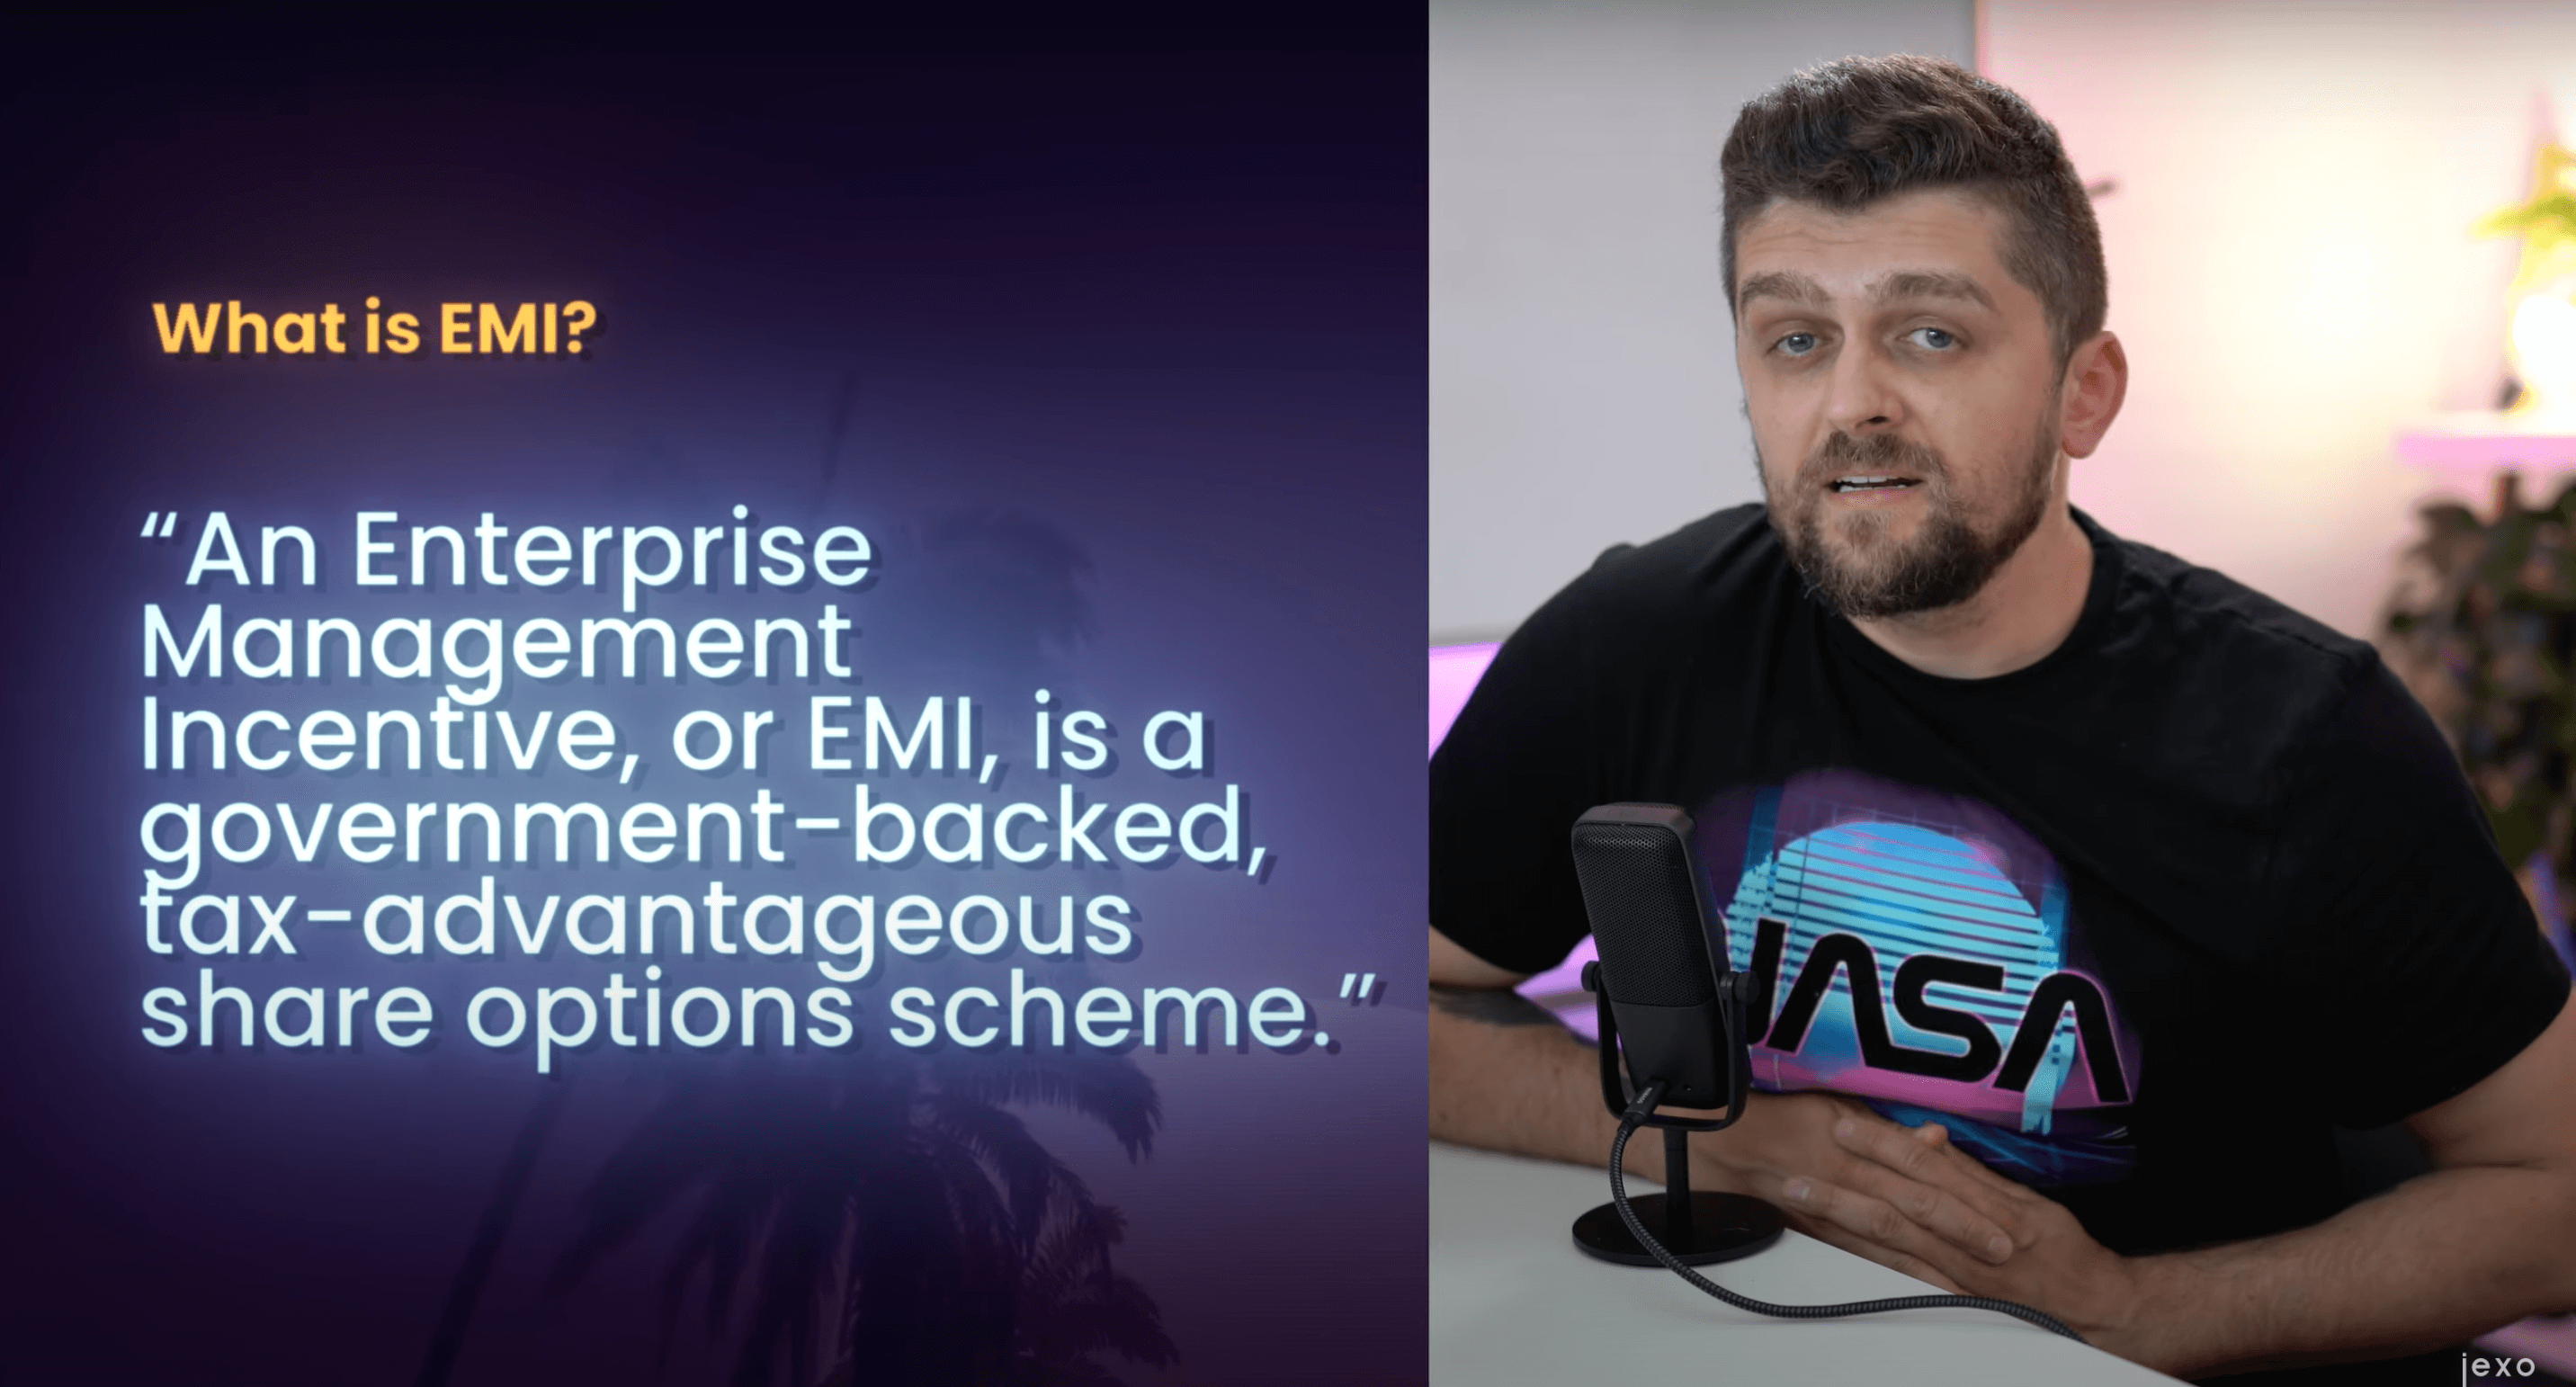 What is EMI?